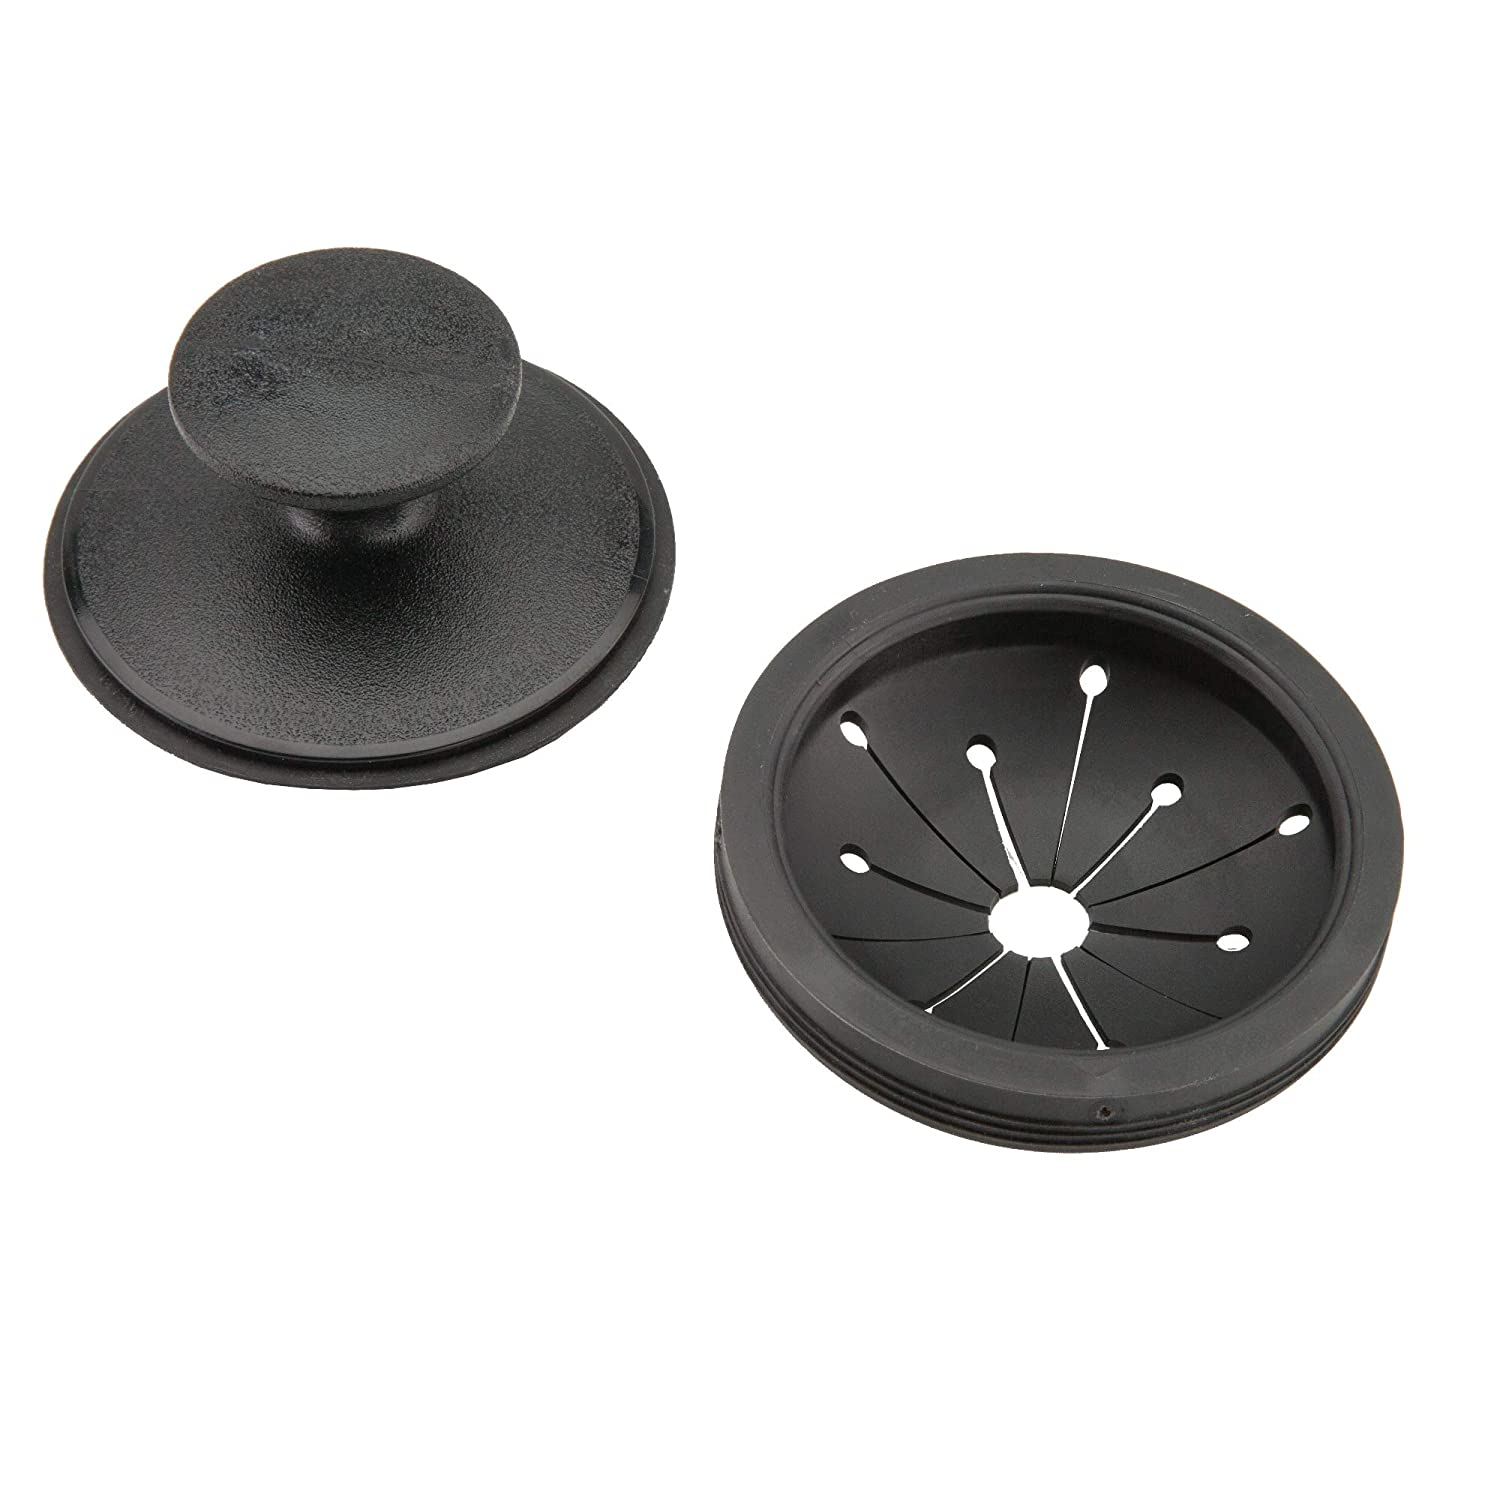 Waste King 1025 EZ Mount Garbage Disposal Stopper and Splash Guard, Black